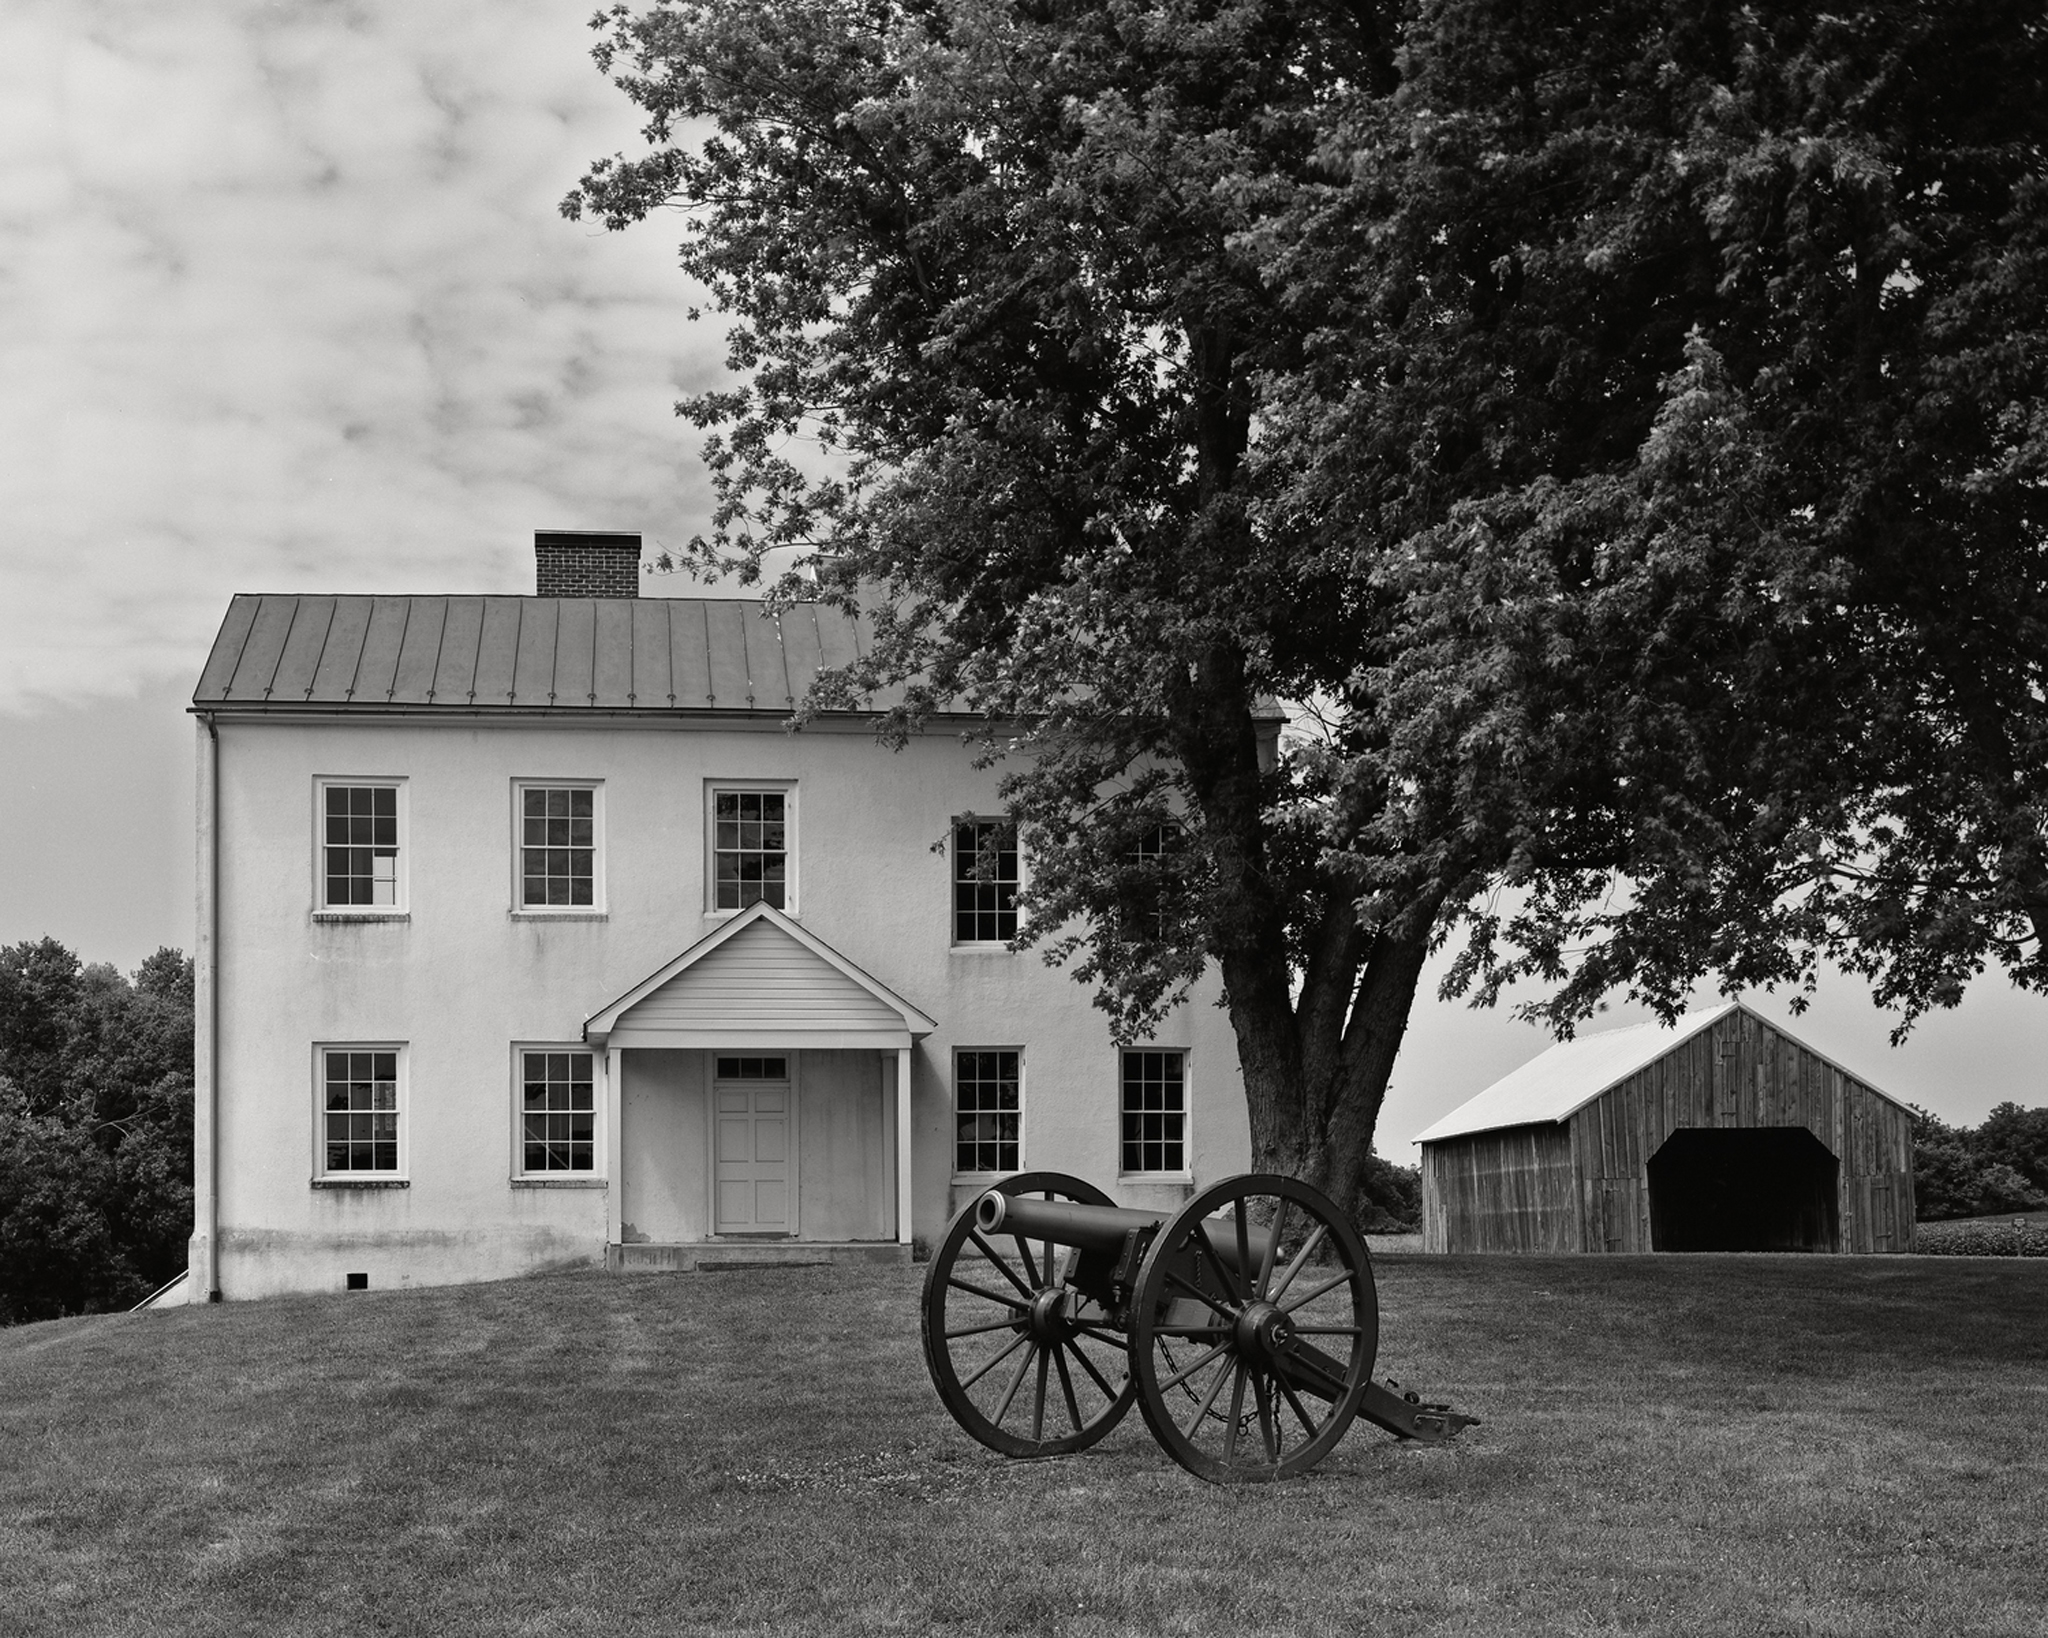 The Best Farm at Monocacy Battlefield. Frederick, Maryland.